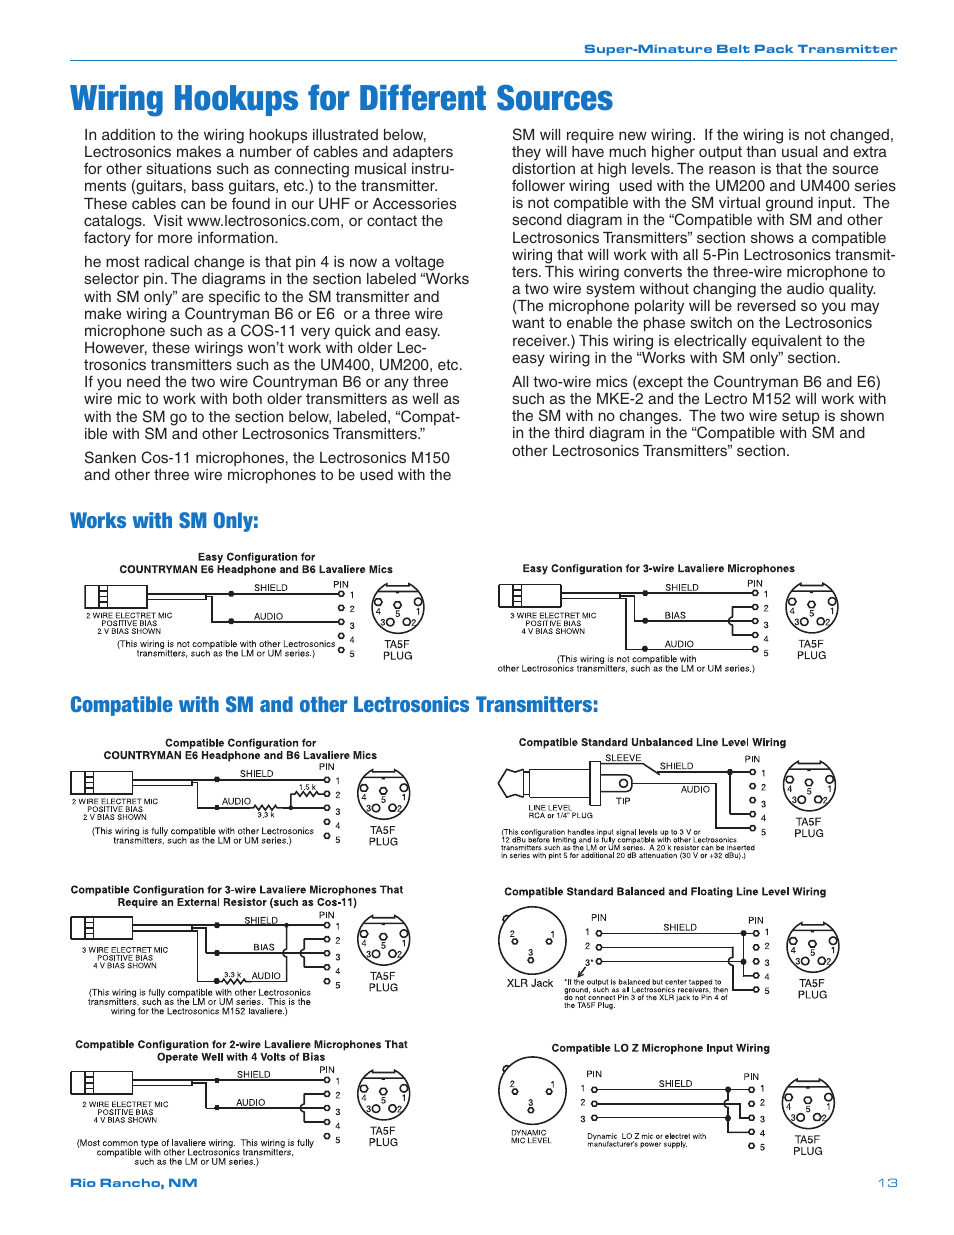 Wiring Hookups For Different Sources Works With Sm Only Uhf Transmitter 5pin Input Jack Microphone Lectrosonics Smq User Manual Page 13 20